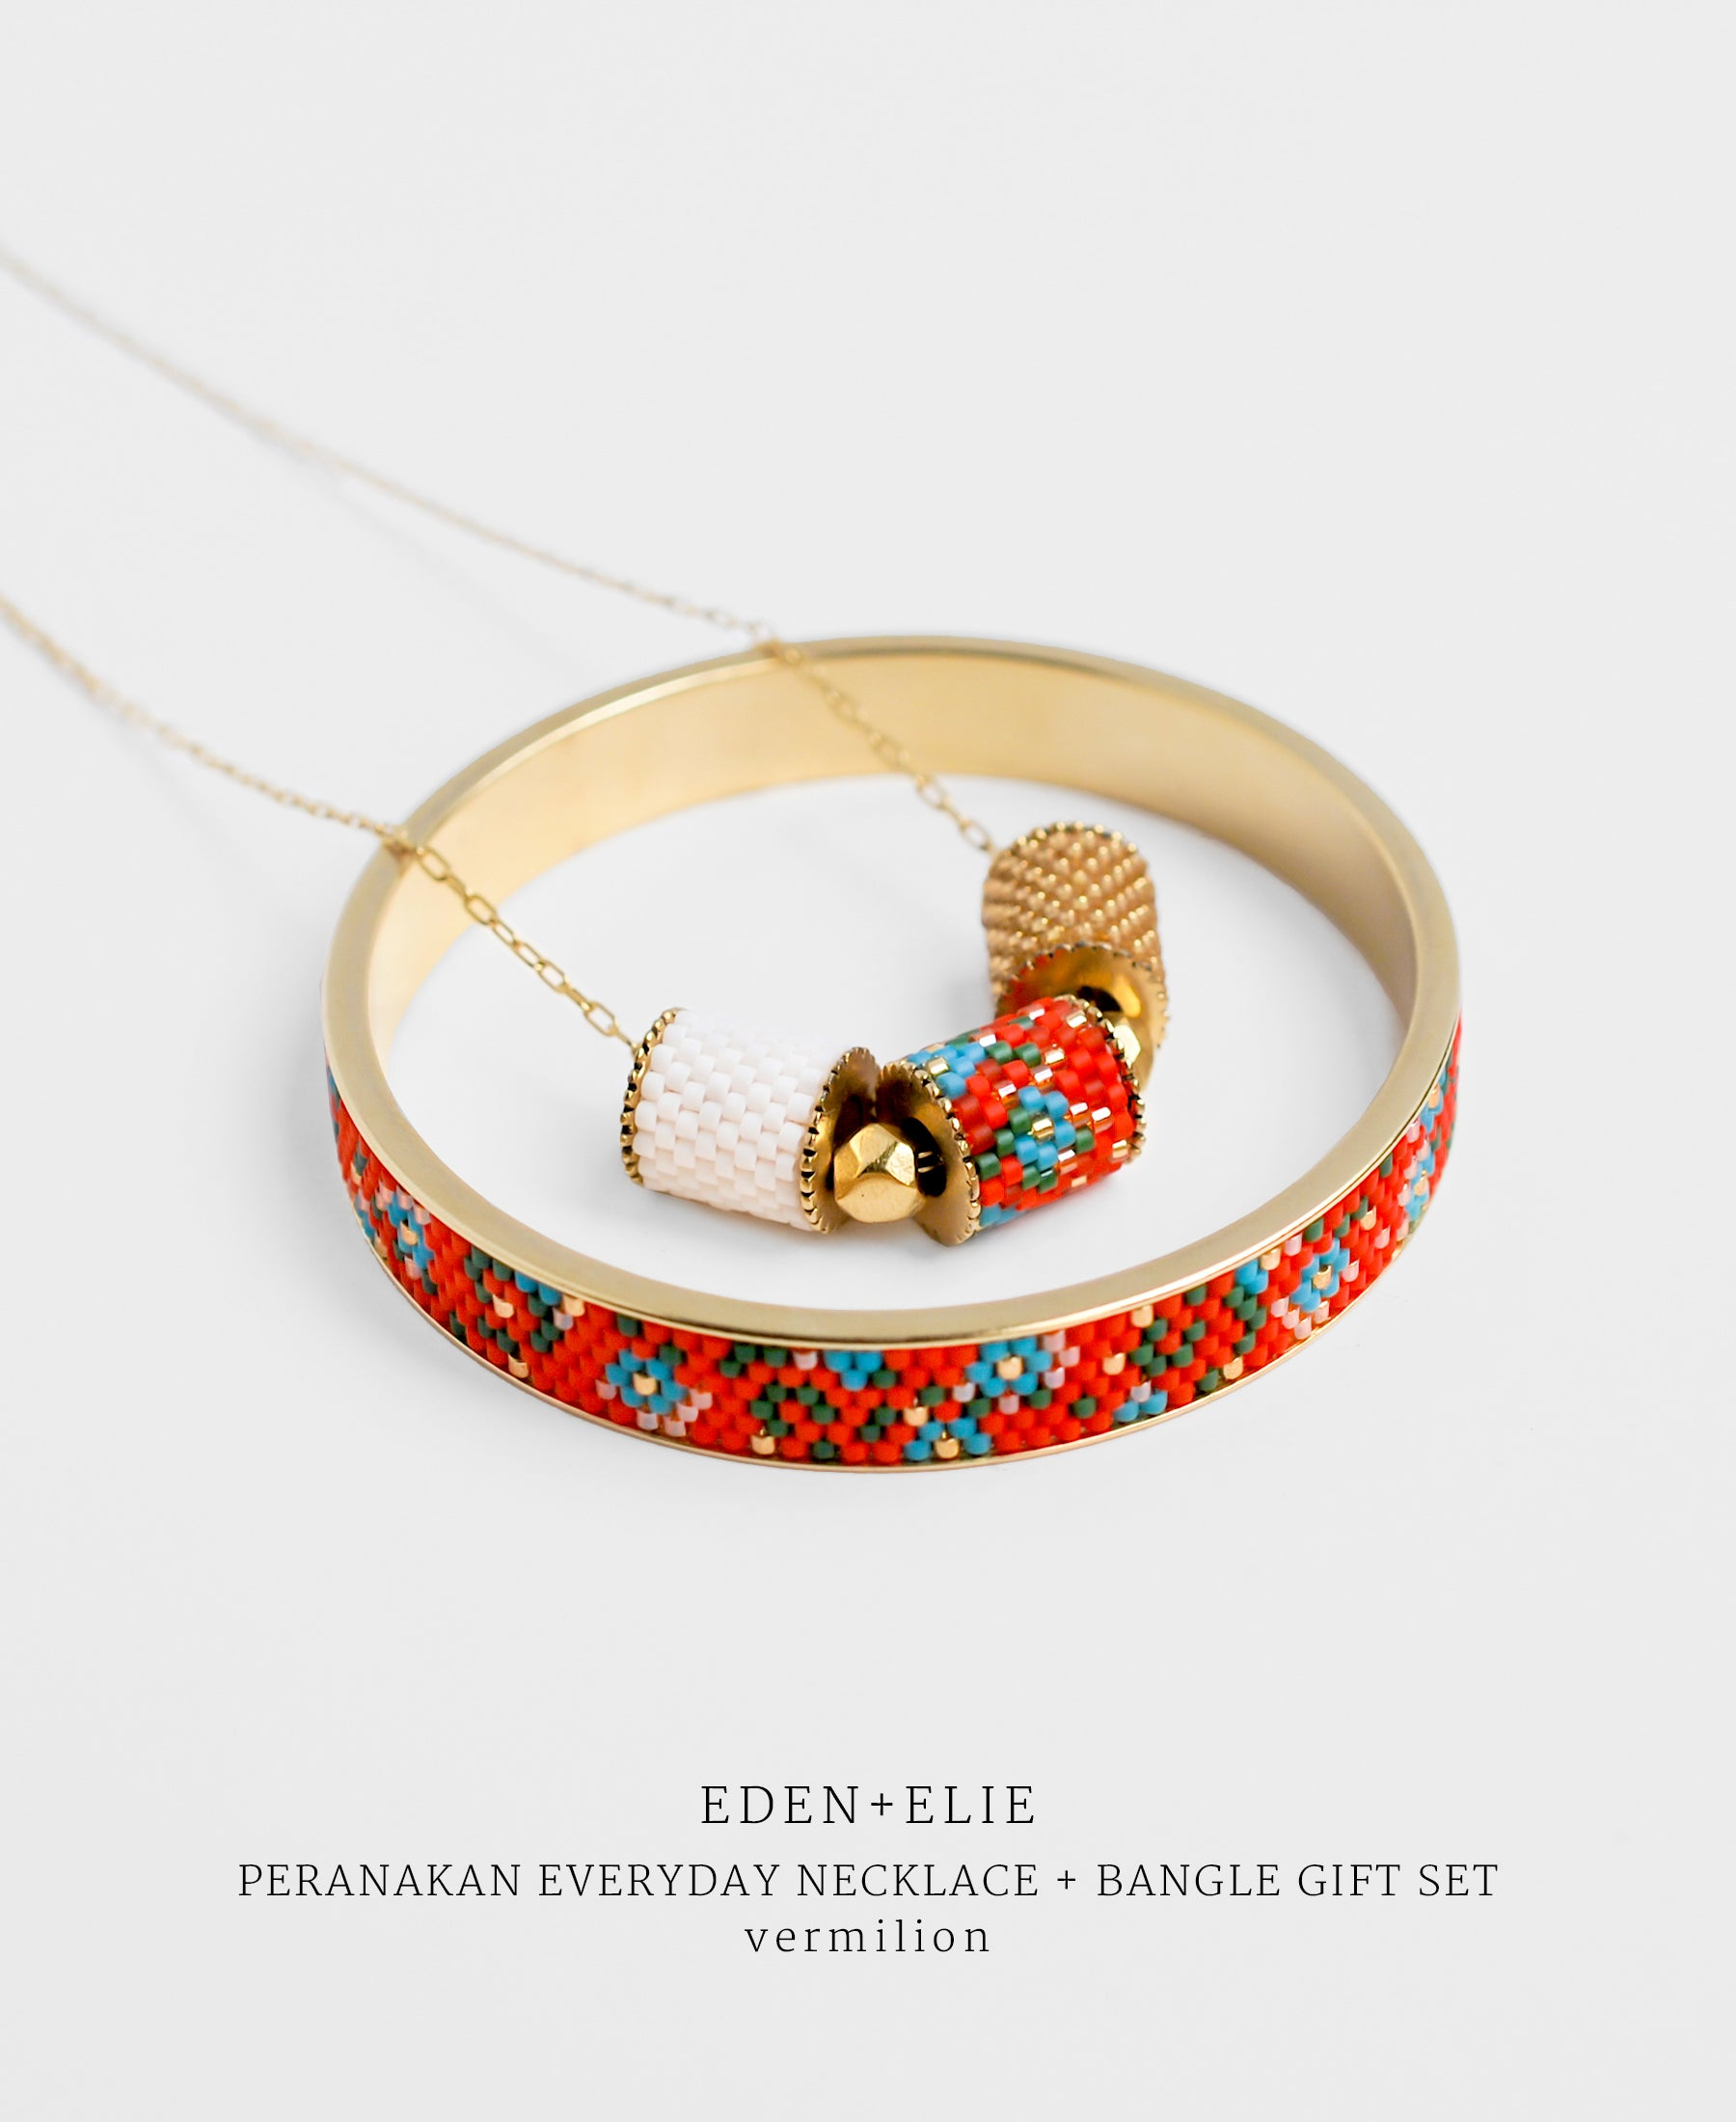 EDEN + ELIE Modern Peranakan adjustable length necklace + bangle gift set - vermilion